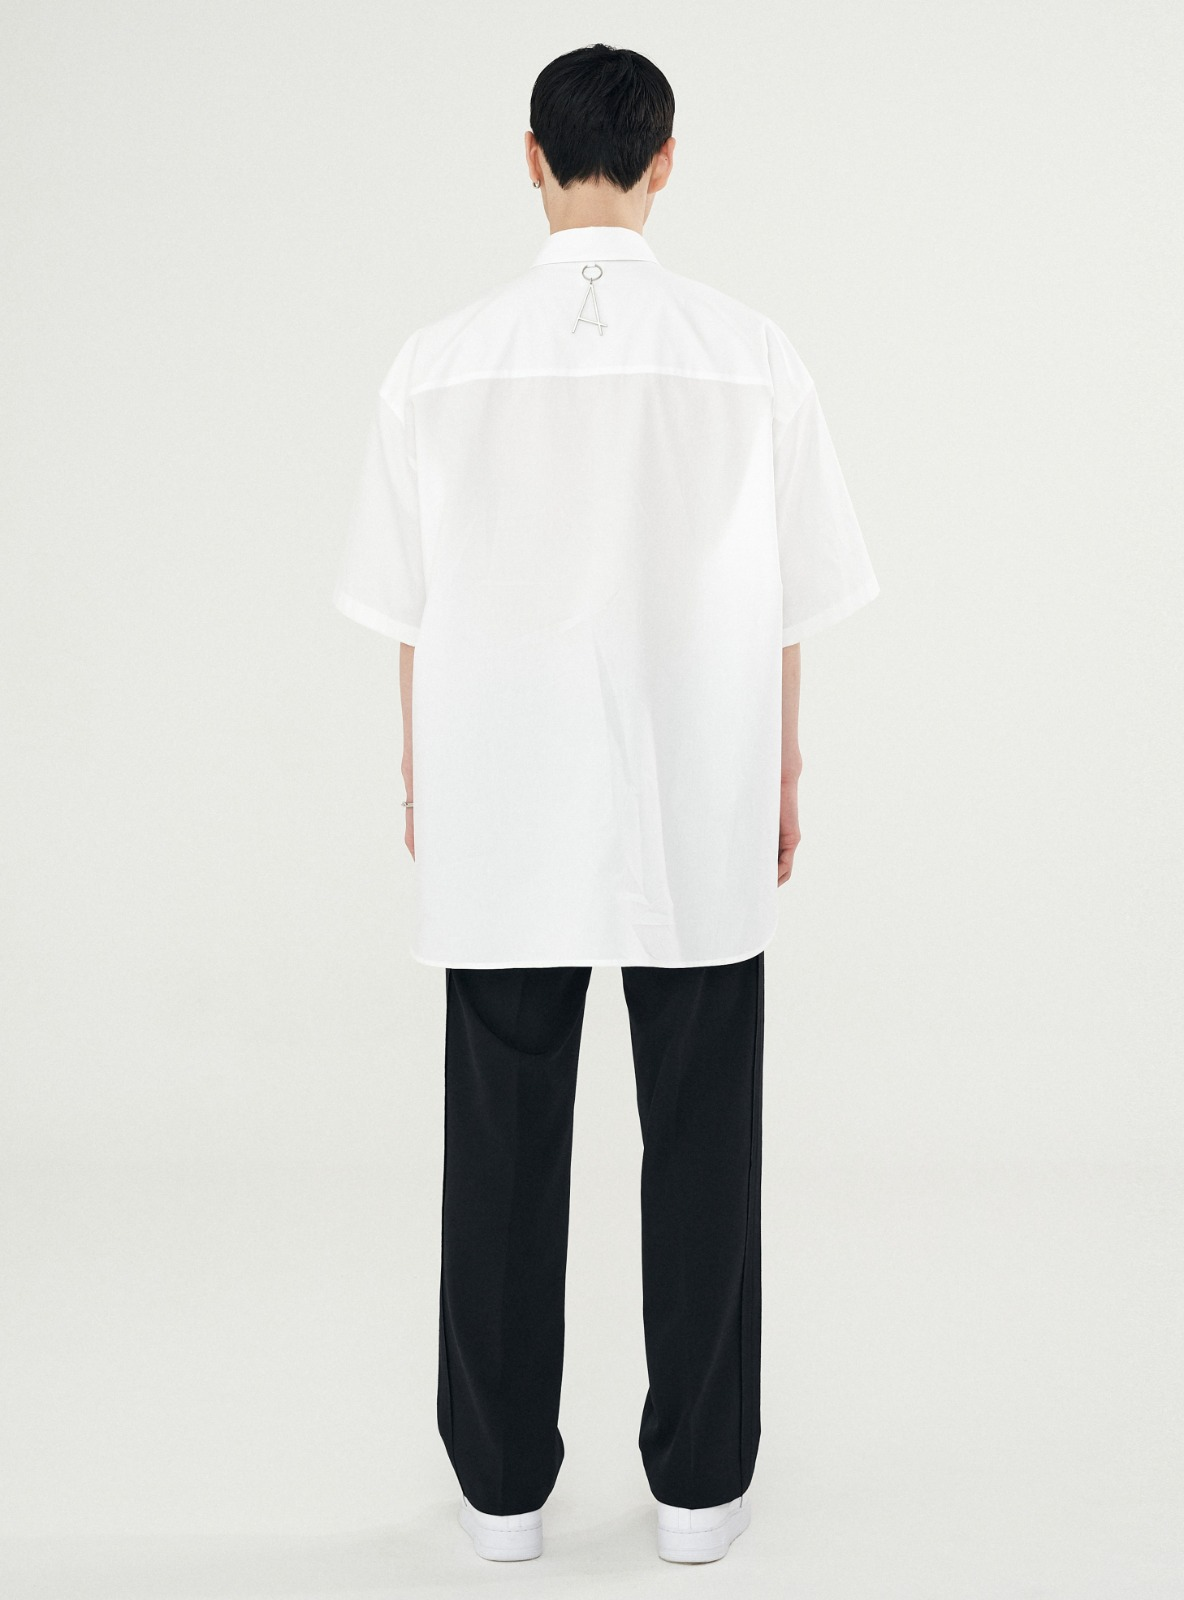 ADDITUDE No.4 AVANTGRADE SHIRT WHITE